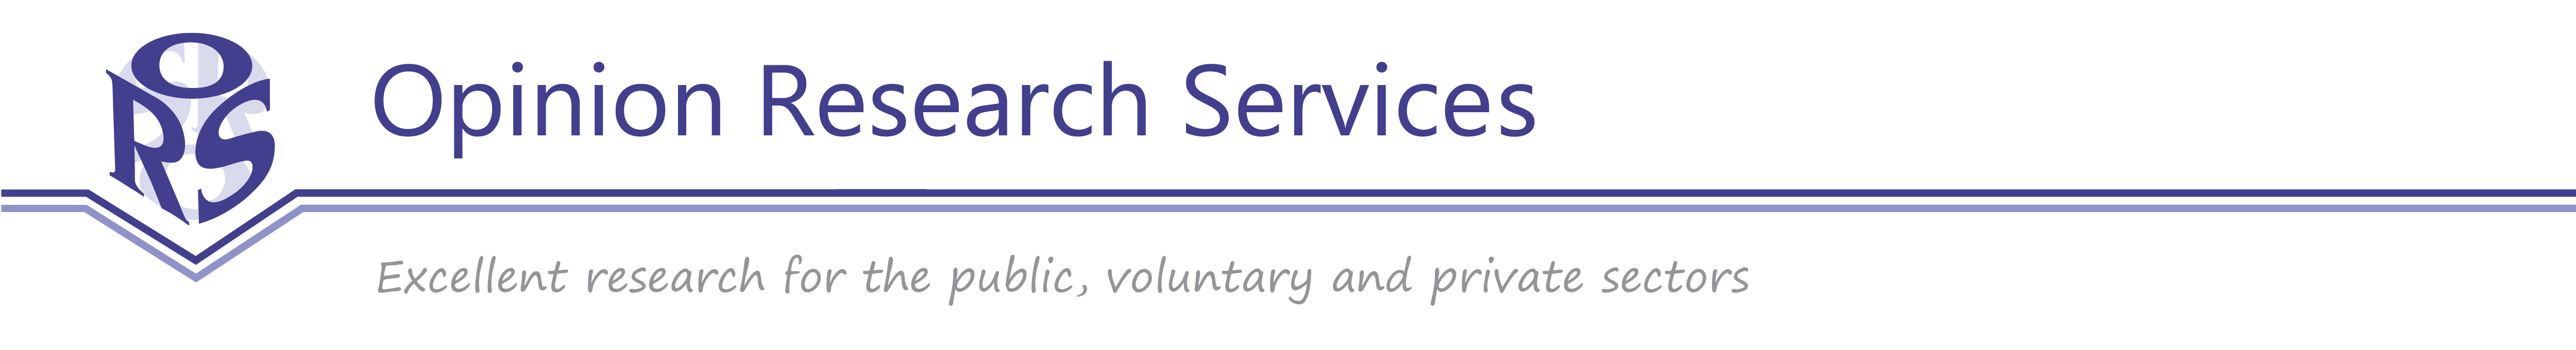 Opinion Research Services Ltd Company banner